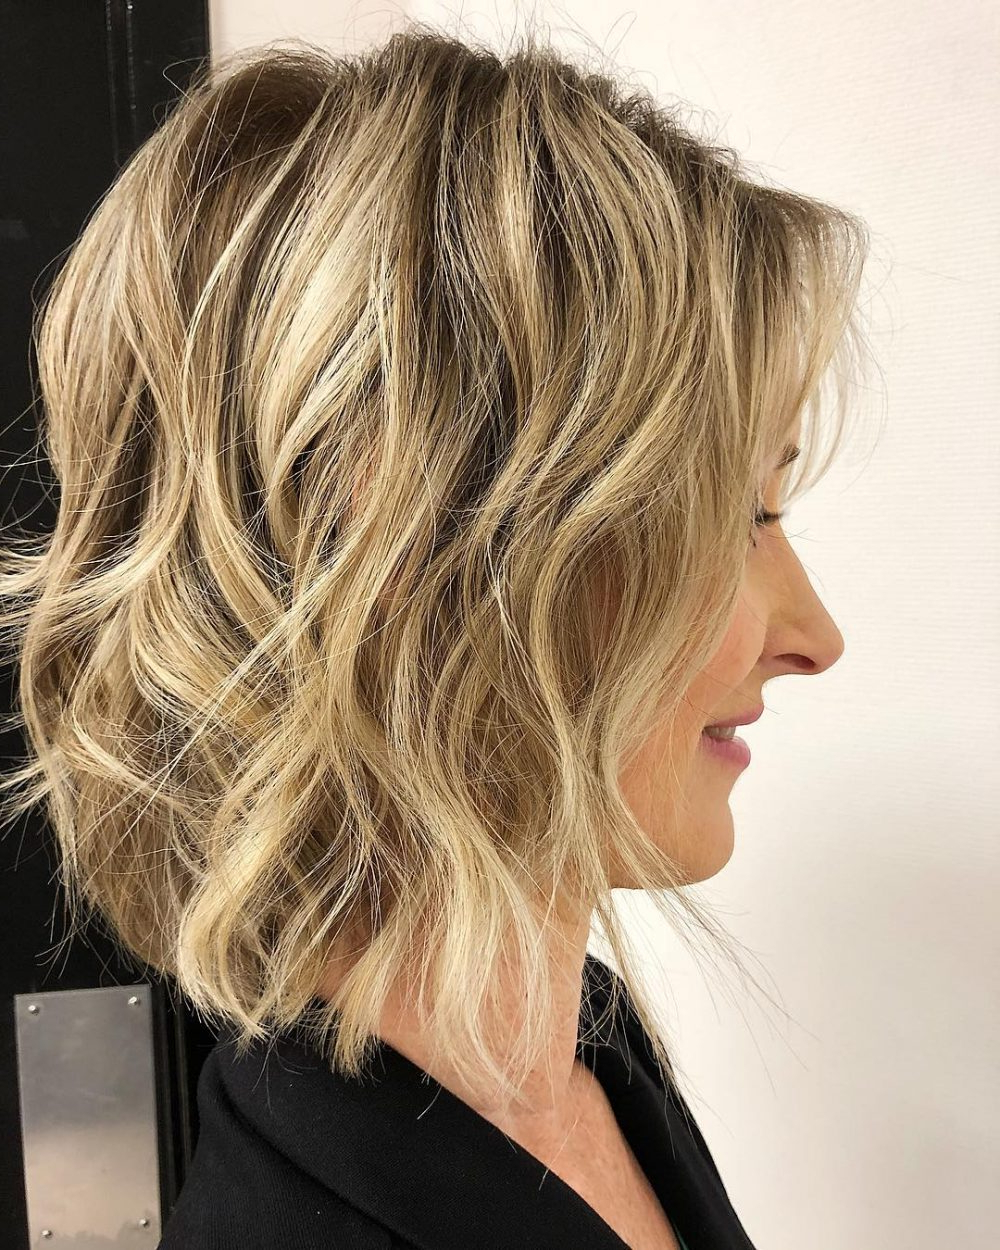 43 Perfect Short Hairstyles For Fine Hair In 2018 Intended For Wavy Sassy Bob Hairstyles (View 10 of 20)